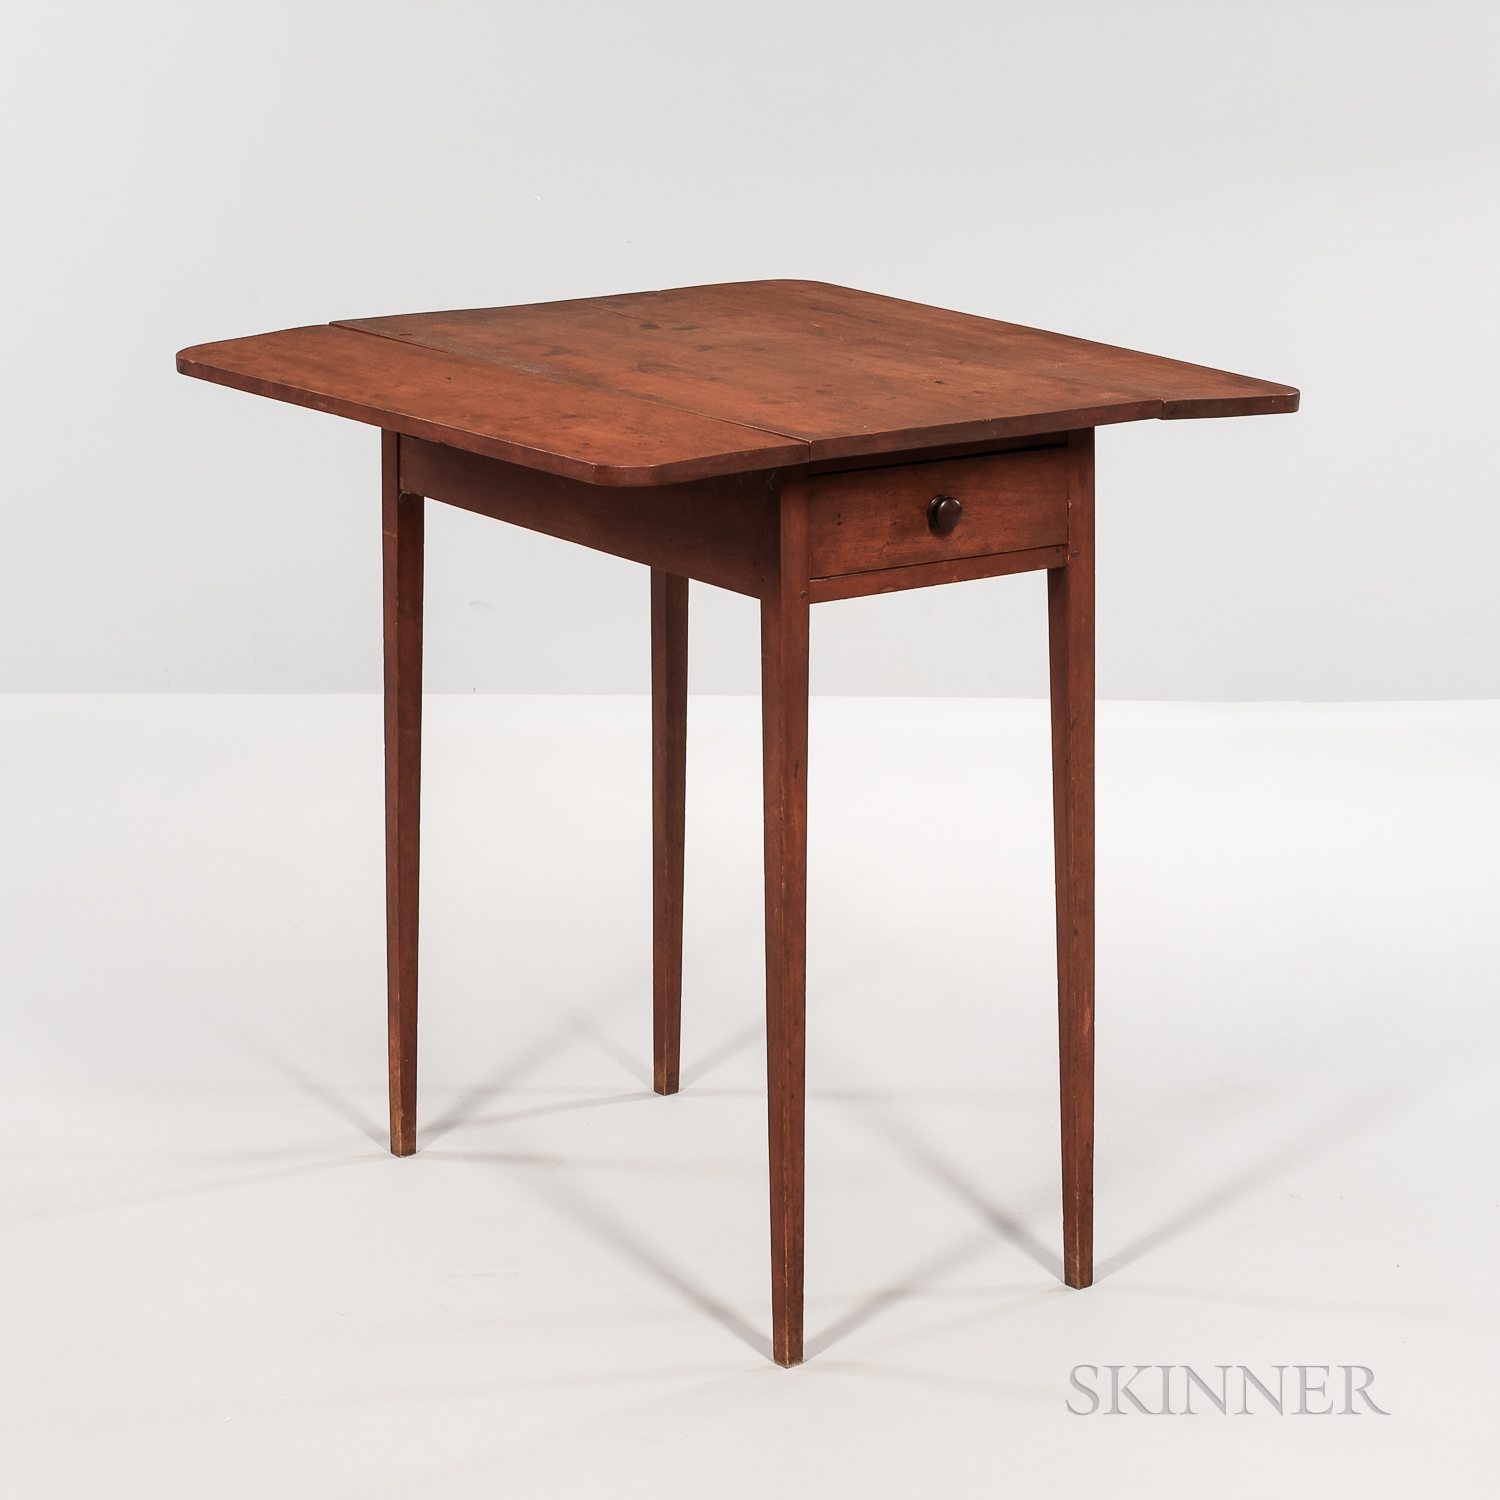 Small Shaker Red-stained Drop-leaf Table